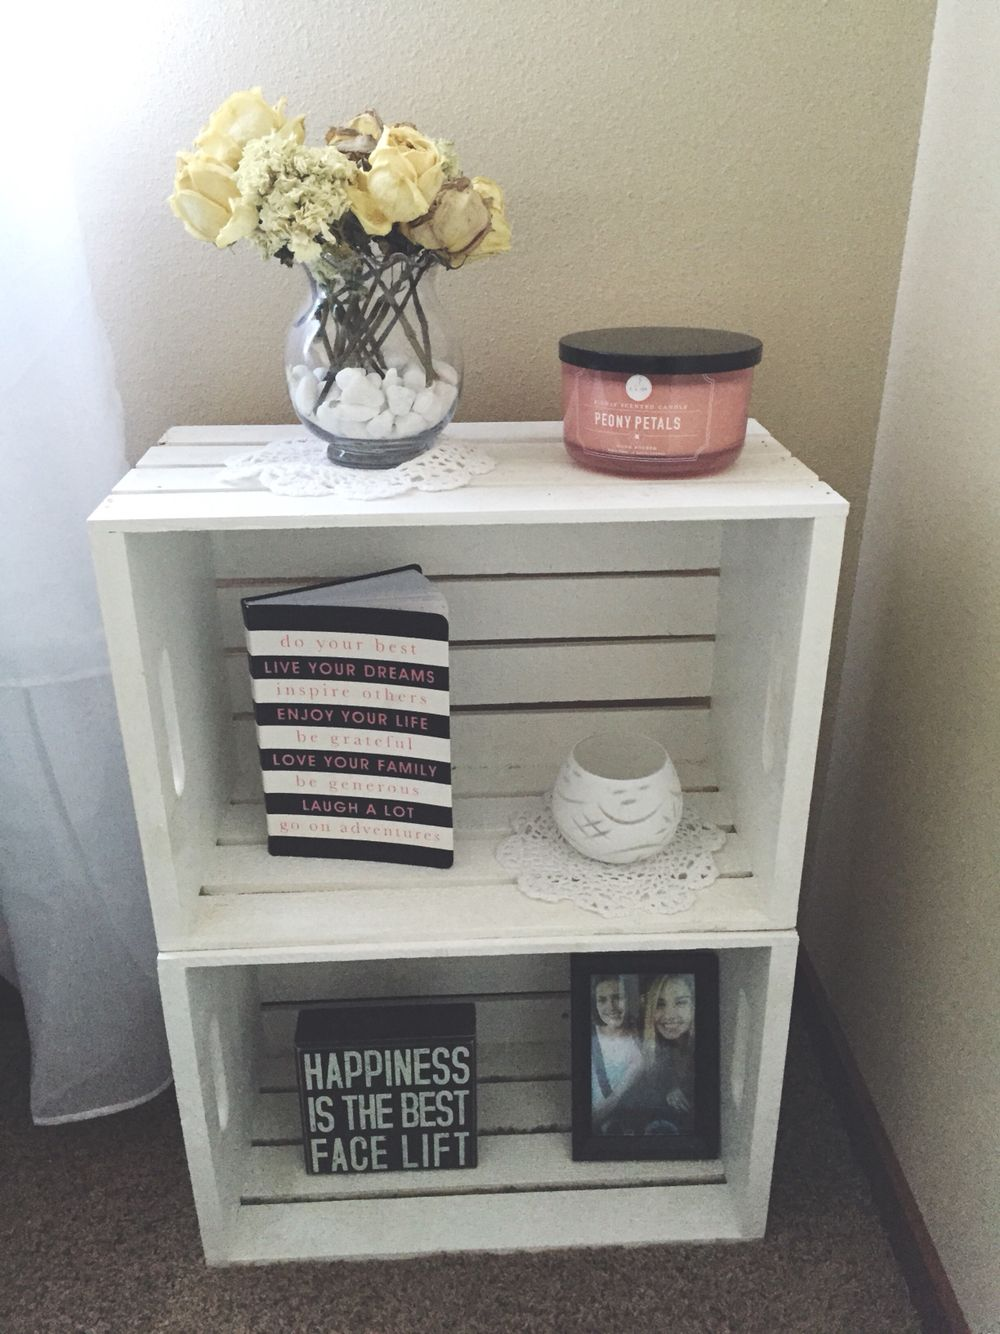 Ideas Creativas para Decorar con Cajas Madera Nightstands Crates